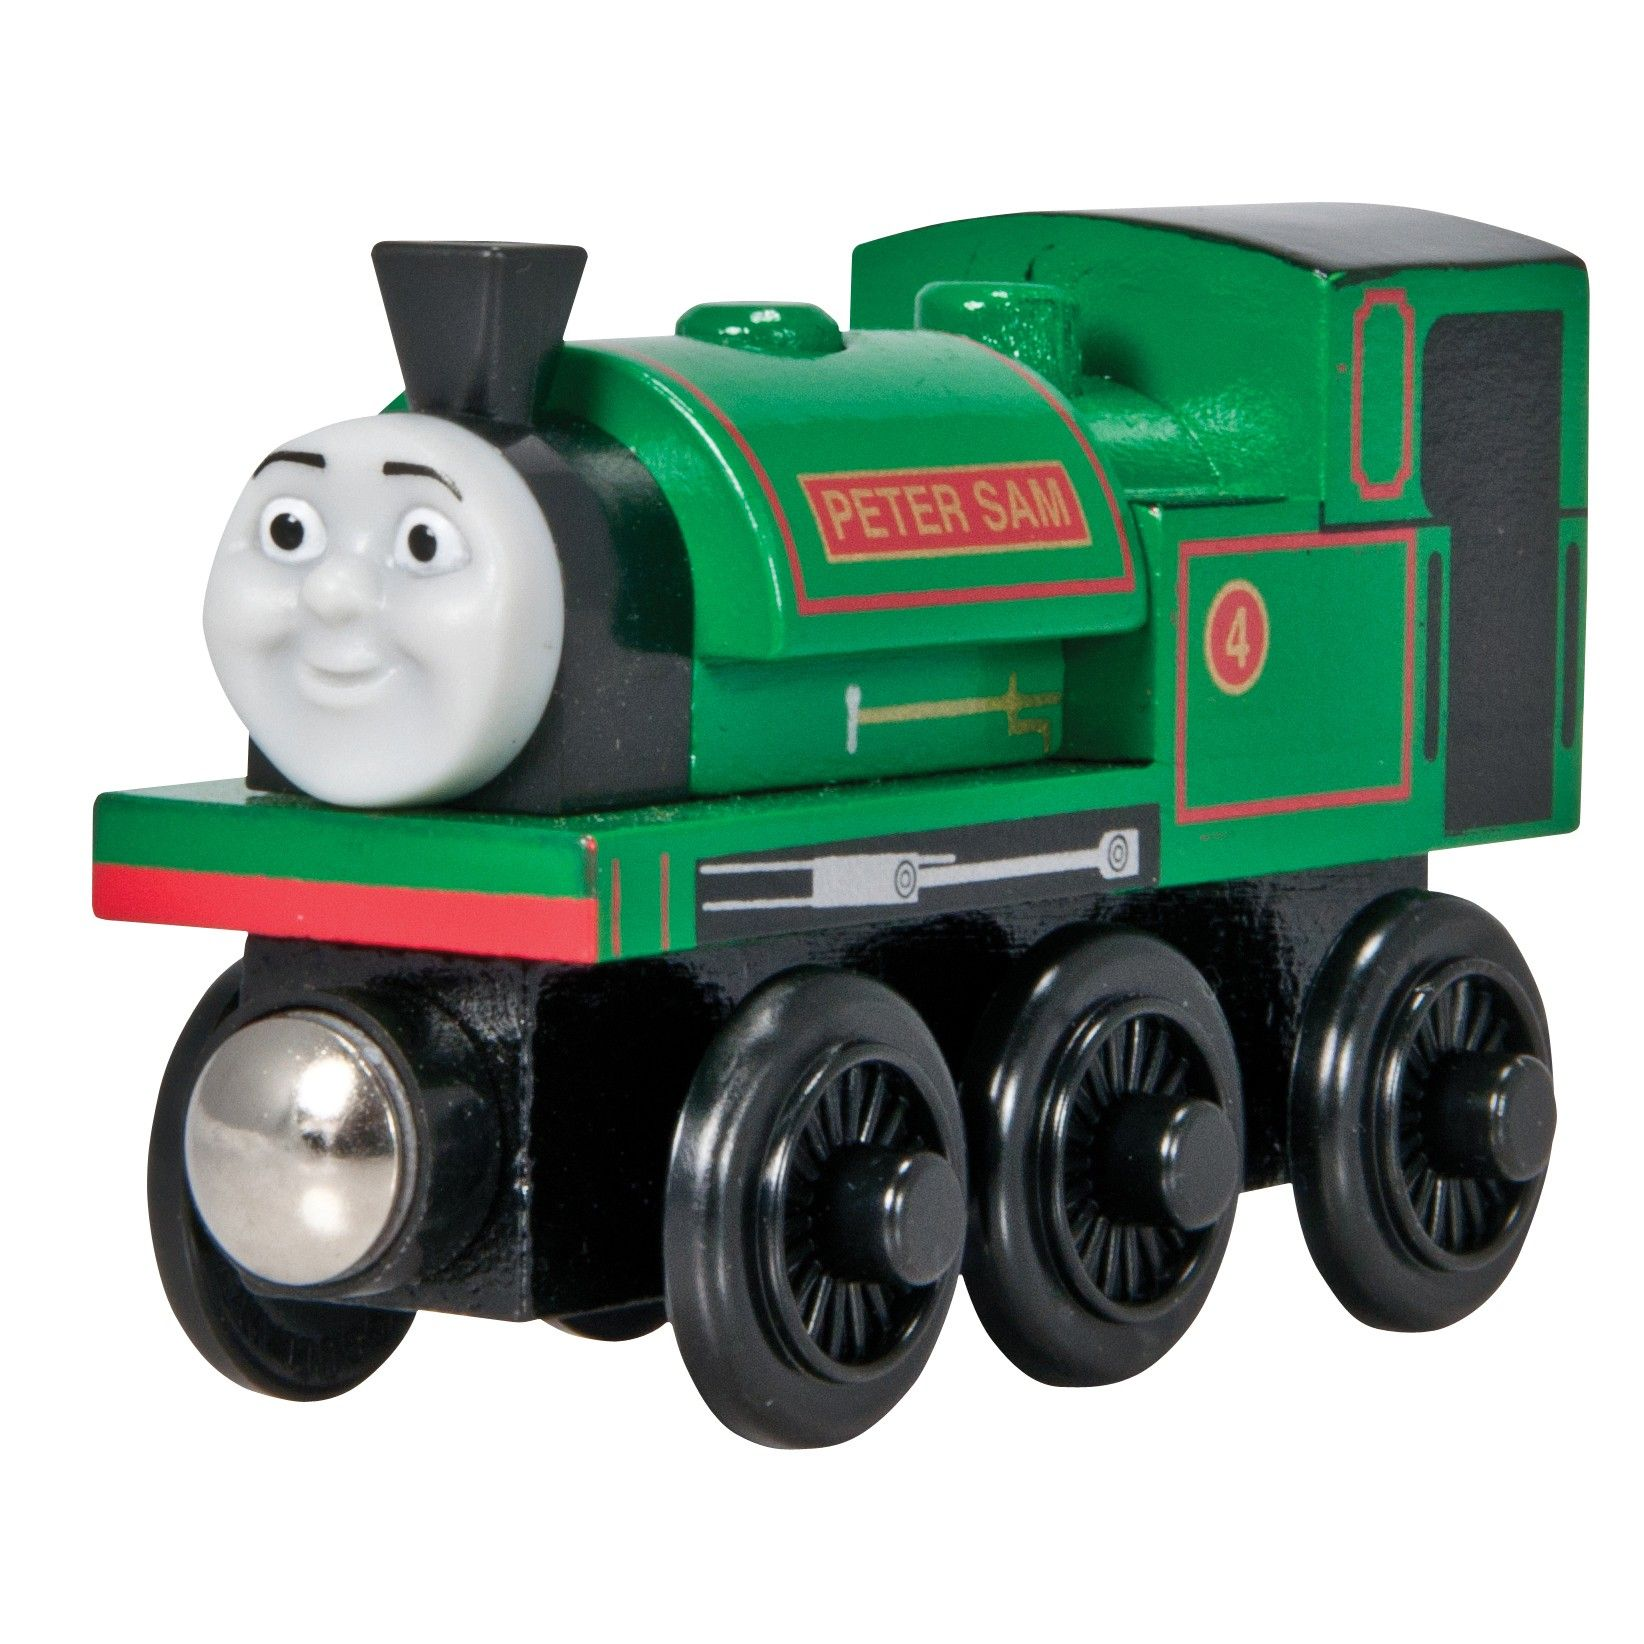 Thomas Friends Wooden Railway Peter Sam Toys Games Thomas And Friends Toy Store Toy Train